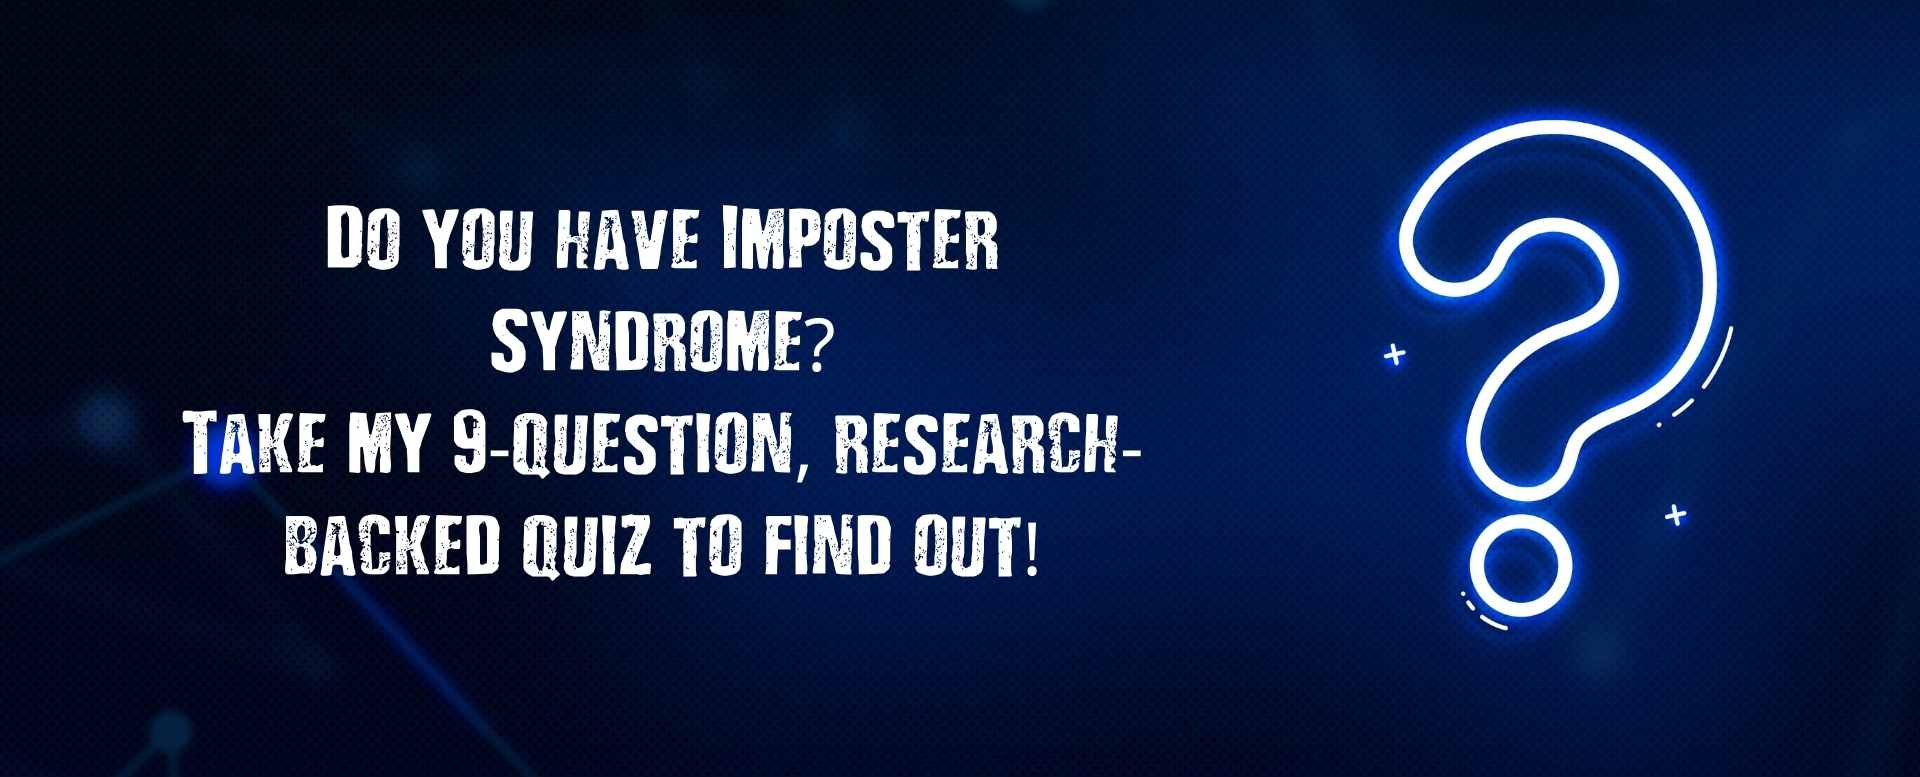 Do you have Imposter Syndrome? How To Tell If You Have Imposter Syndrome